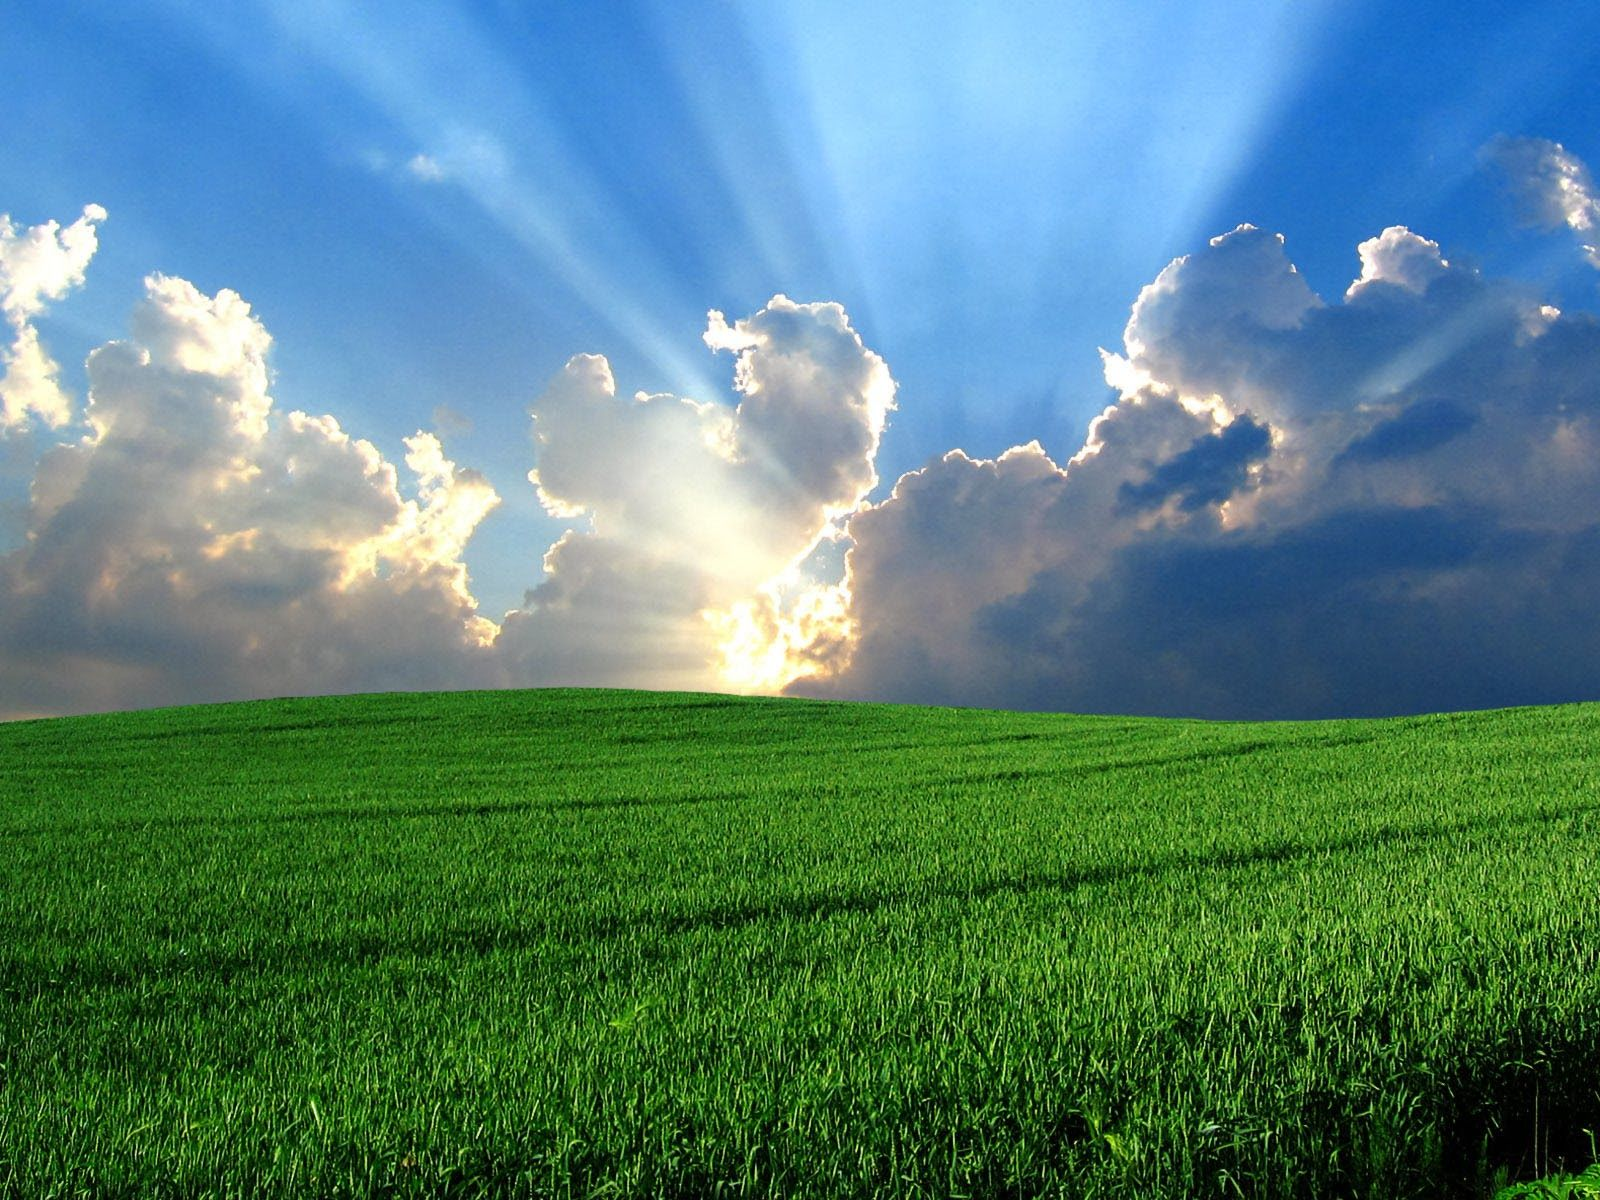 Windows Xp Bliss wallpaper free desktop backgrounds and ...